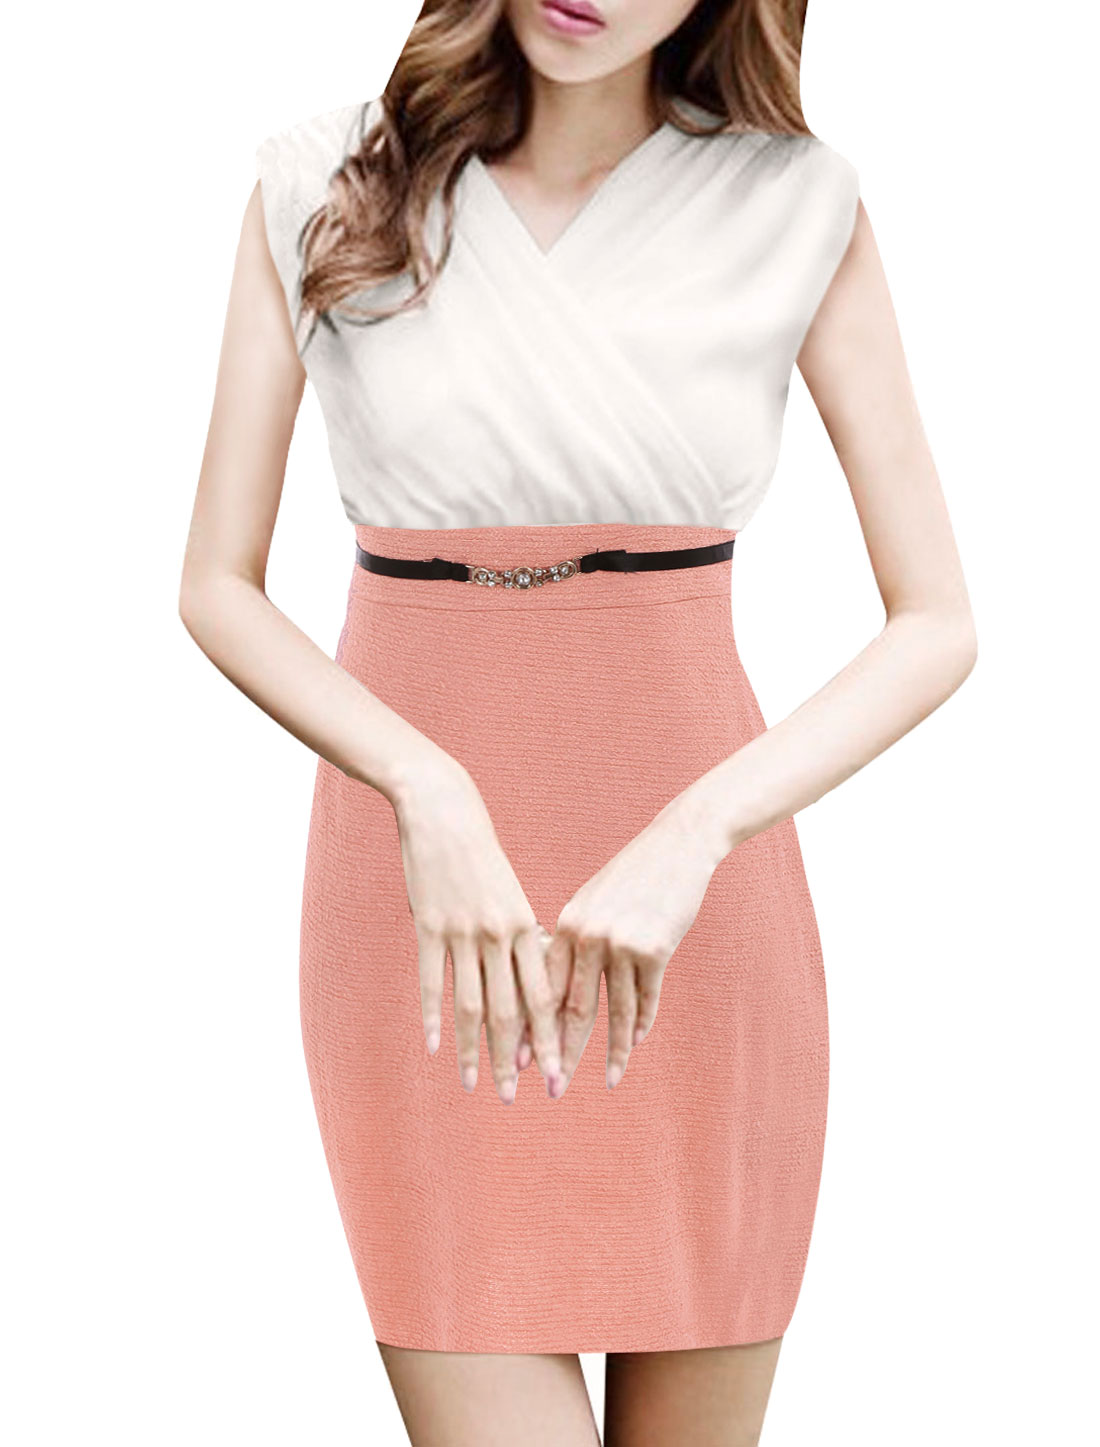 Women Double Crossover V Neck Sleeveless Belted Waist Sheath White Pink Dress XS